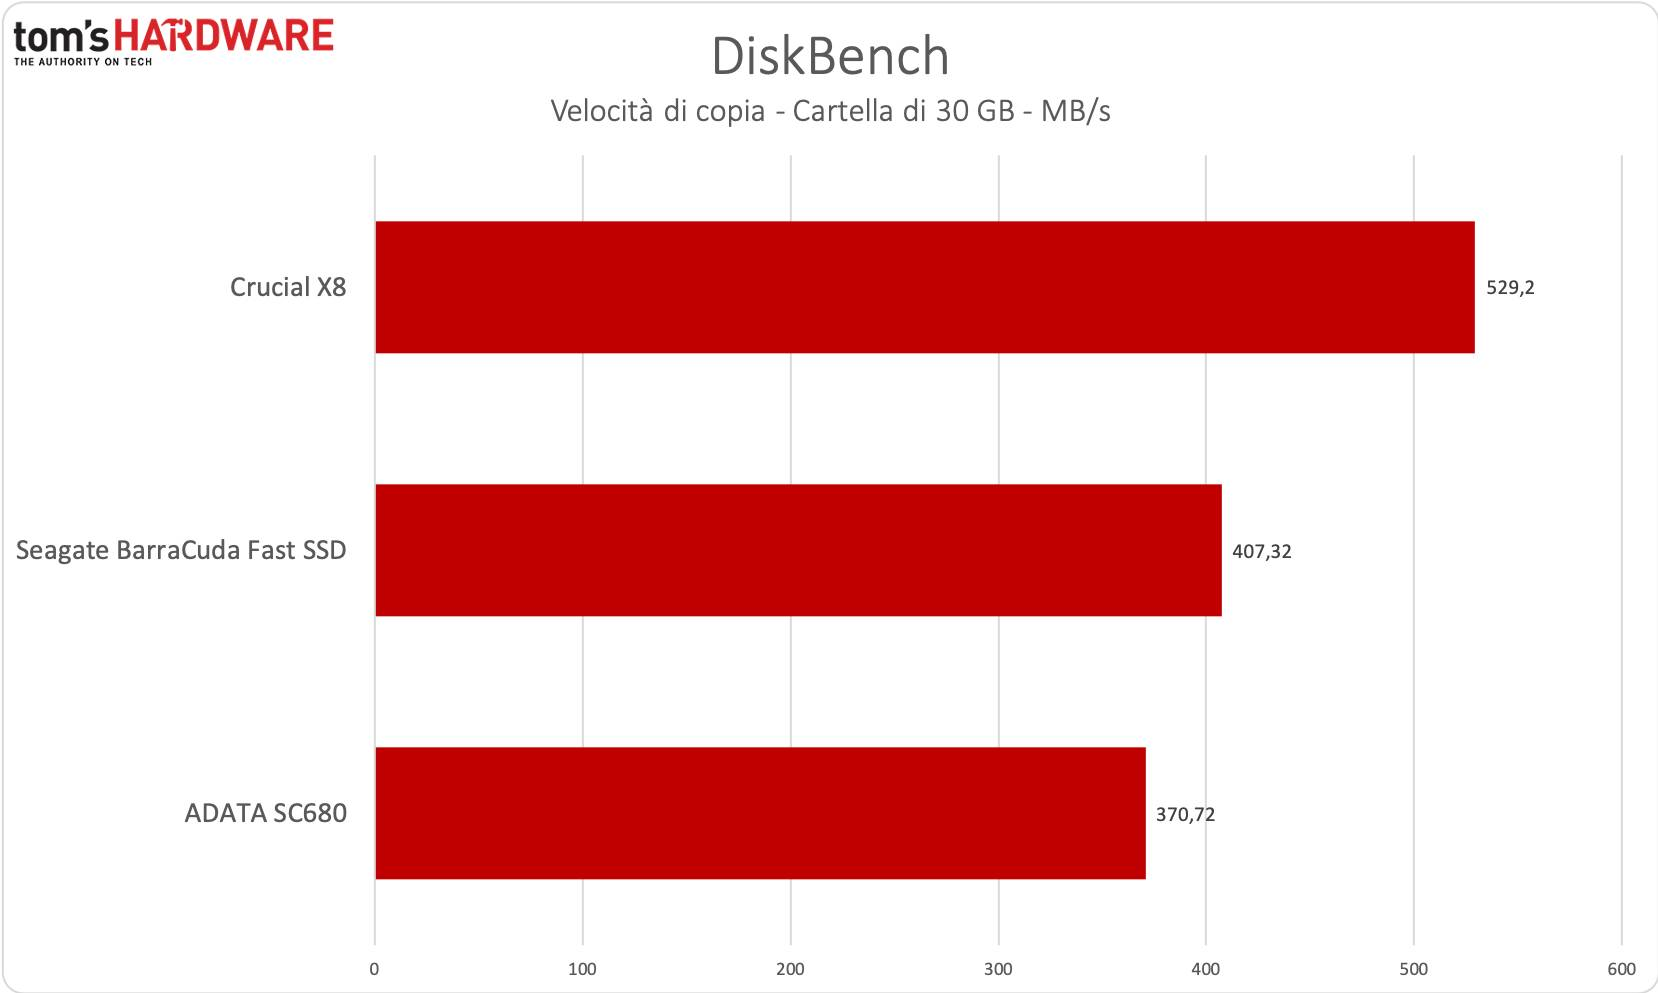 Benchmark BarraCuda Fast SSD - Diskbench copia